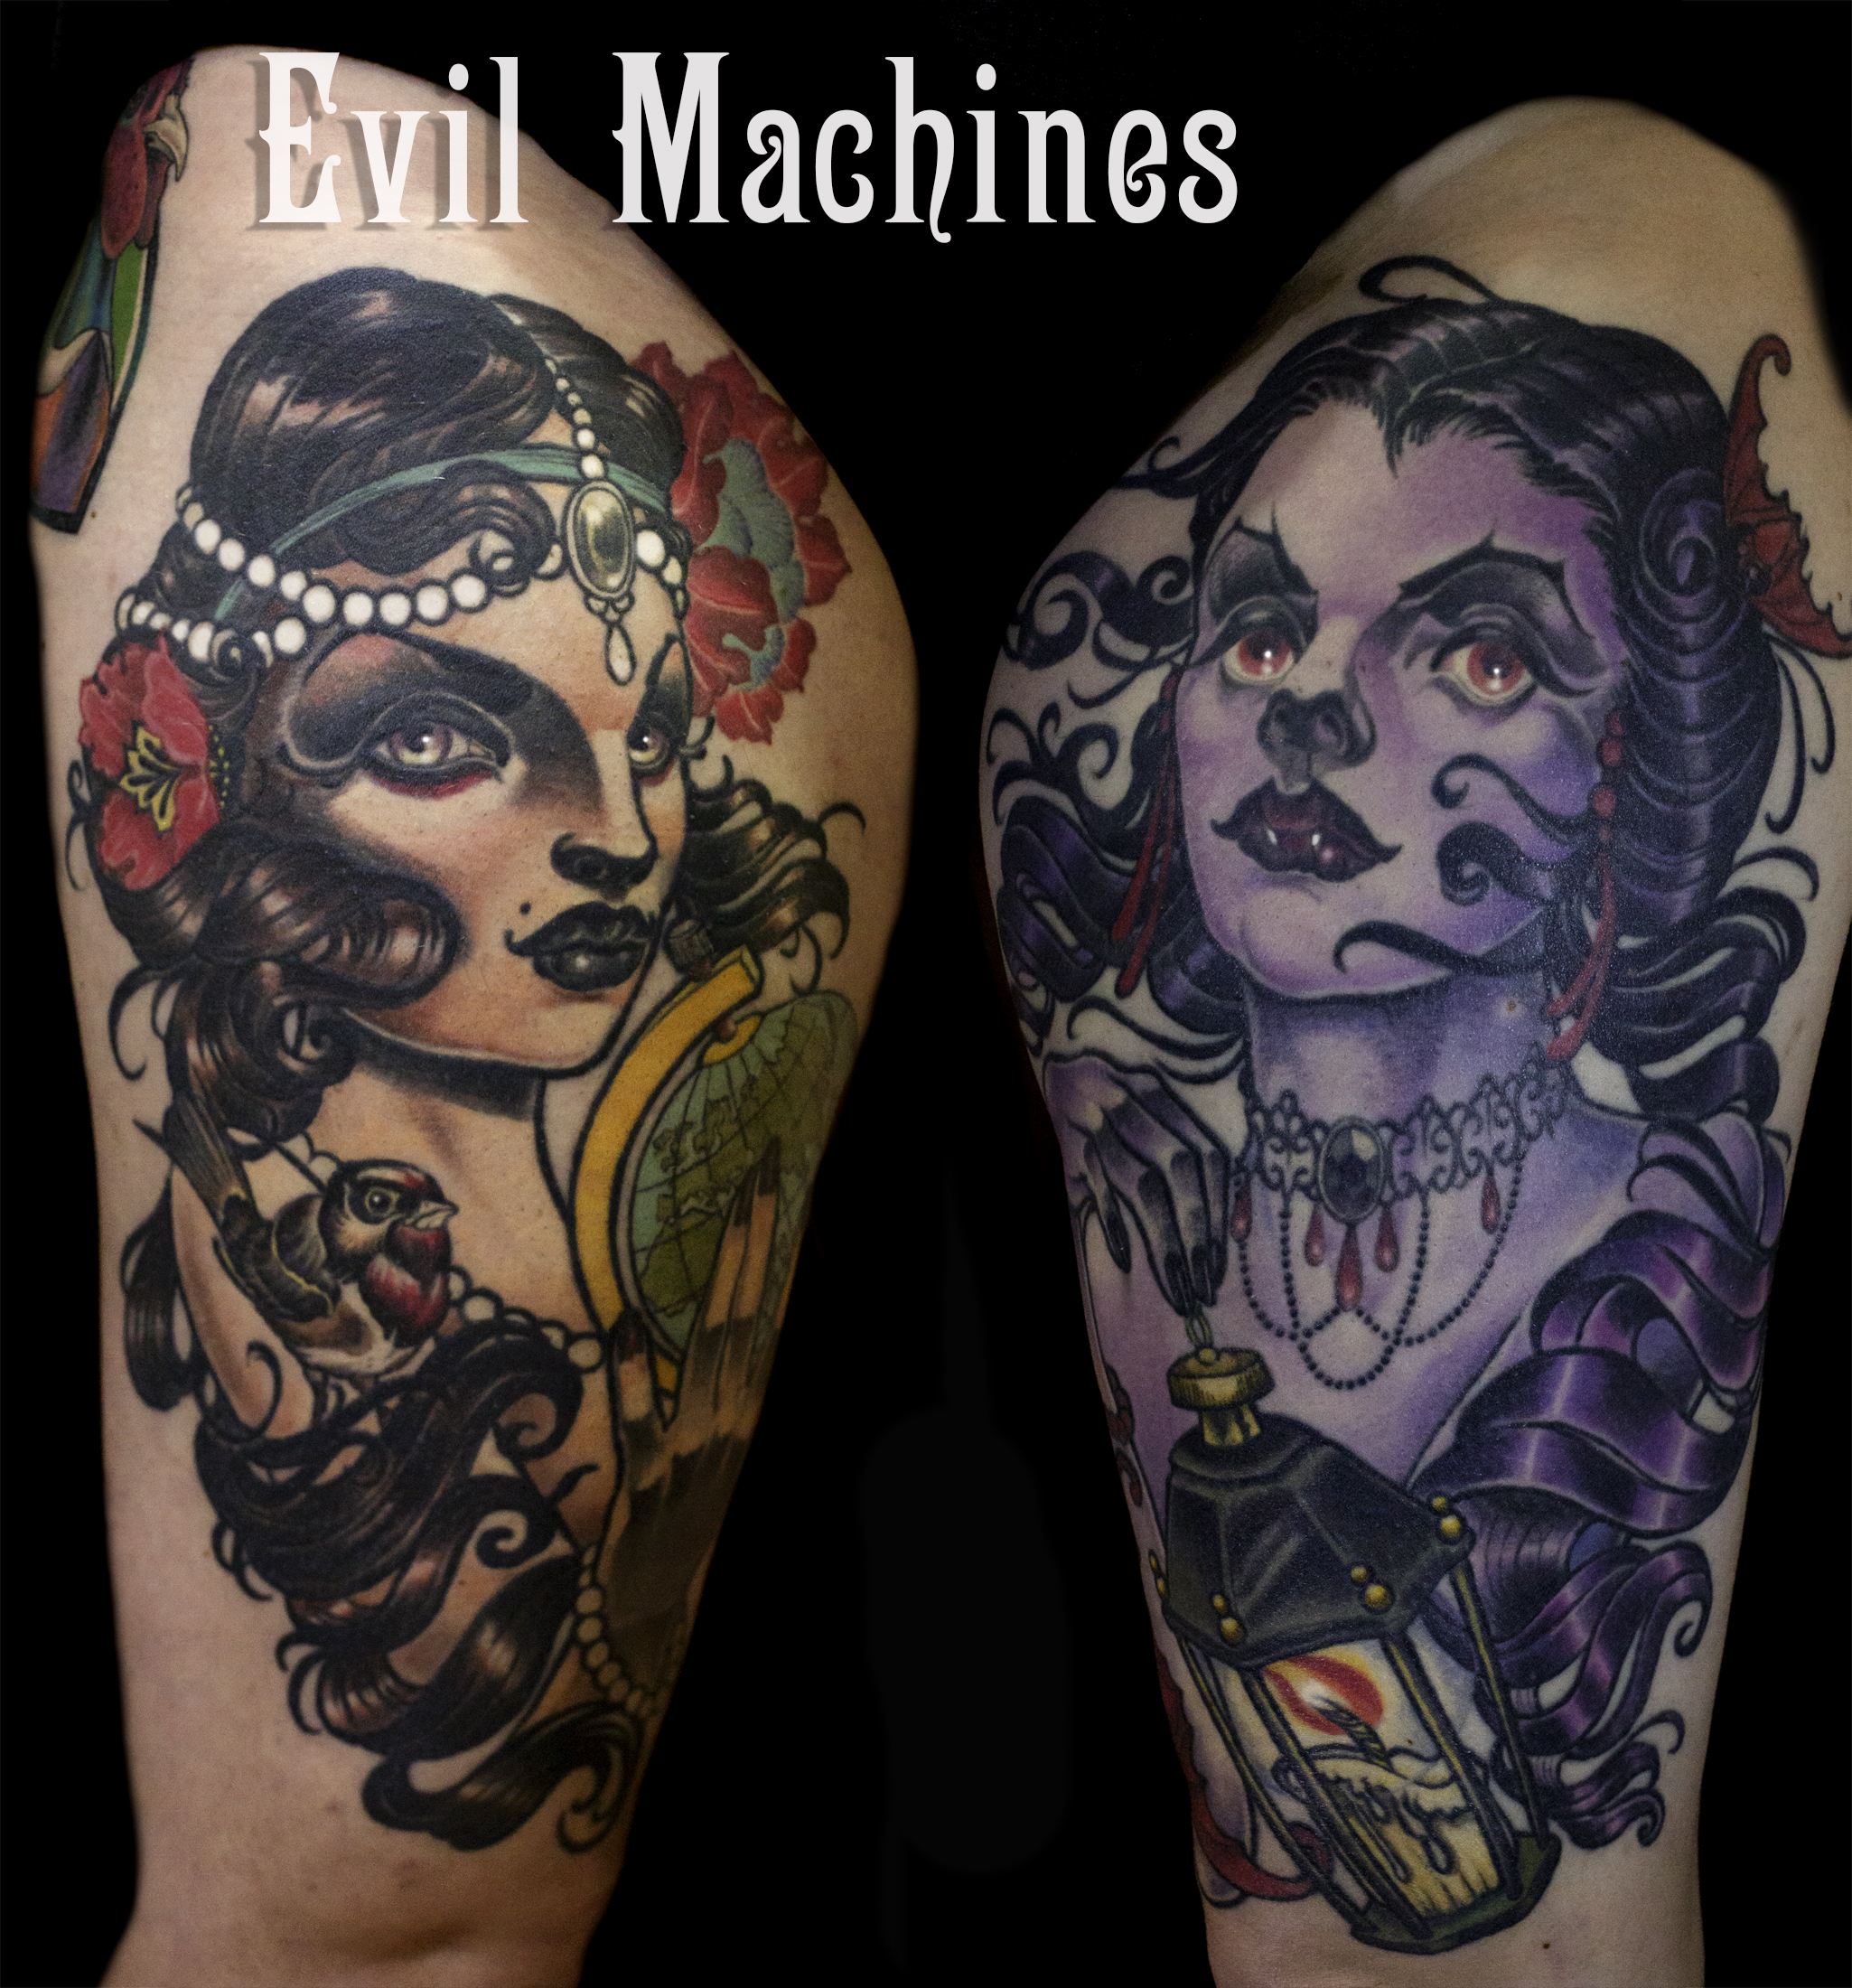 New_traditional_colore_vampira_vampire_globetrotter_beauty_donna_gipsy_Evil_Machines_stefania_lorenzo_tattoo_tatuaggi_Roma_sito_best_migliore